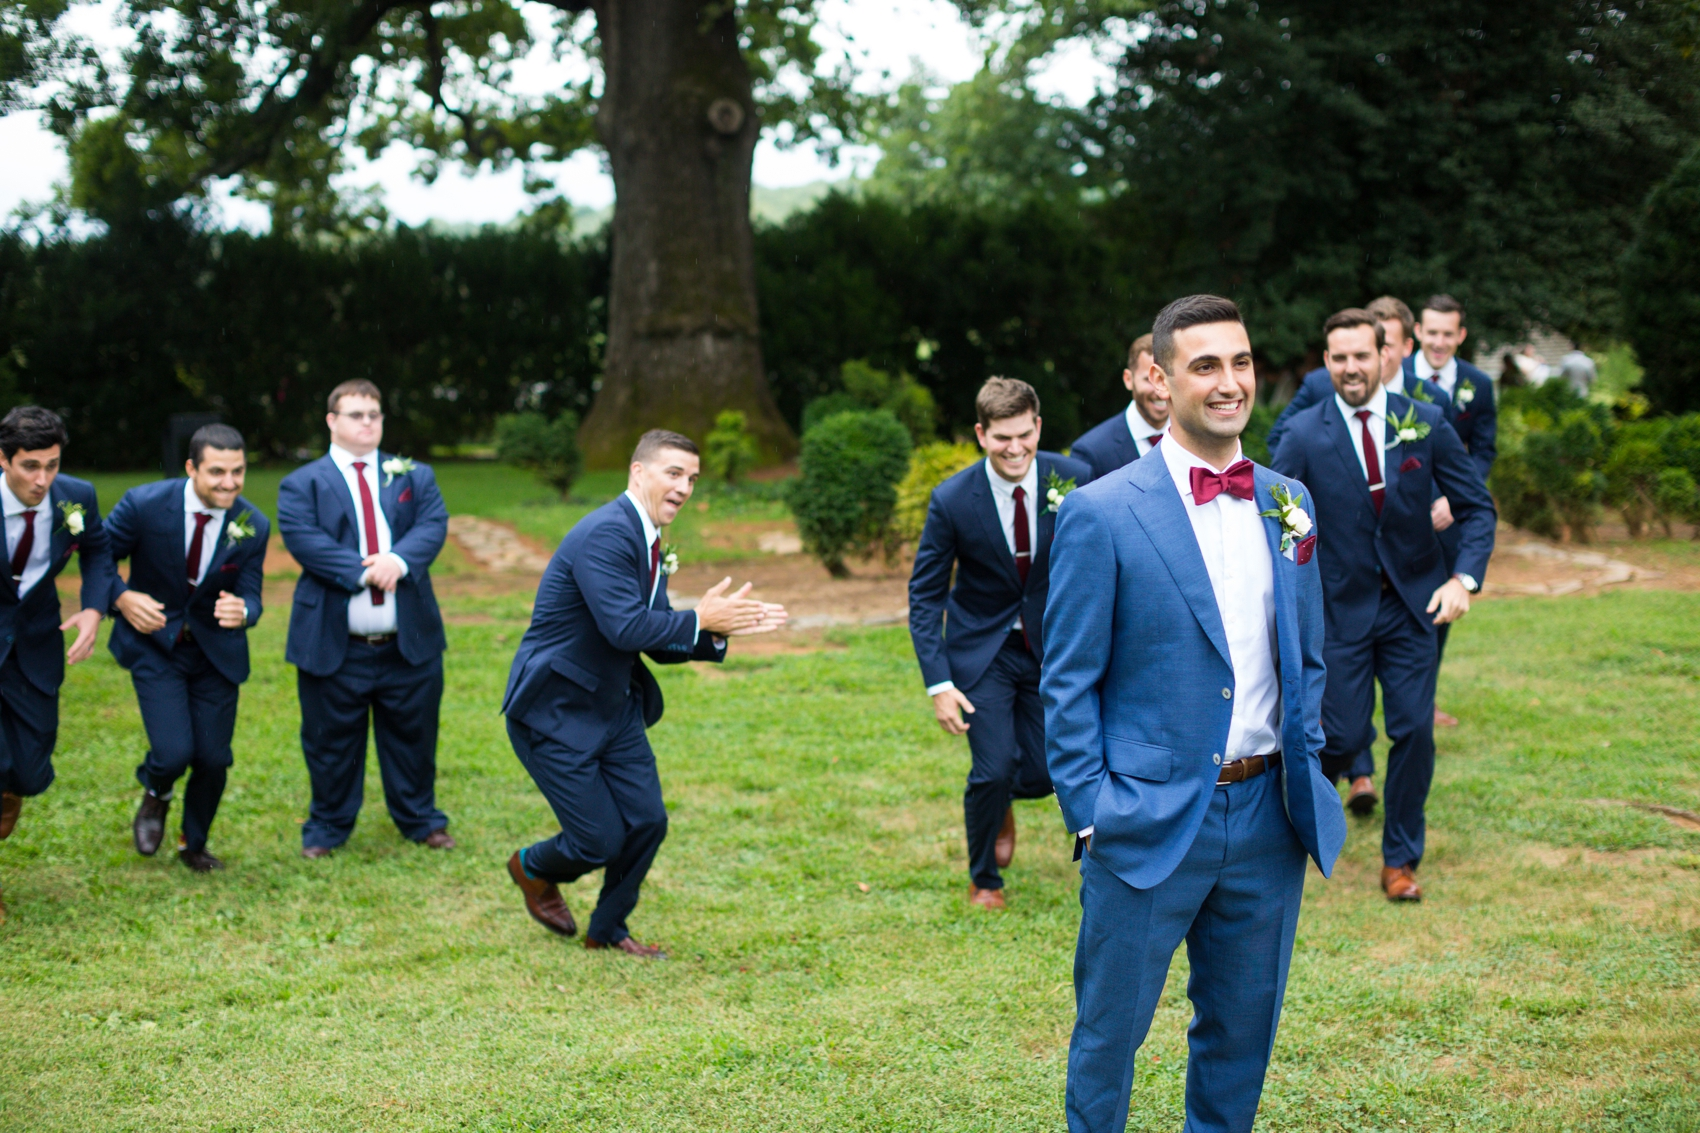 Ashlawn-Highland-Virginia-Wedding-2018-0199.jpg